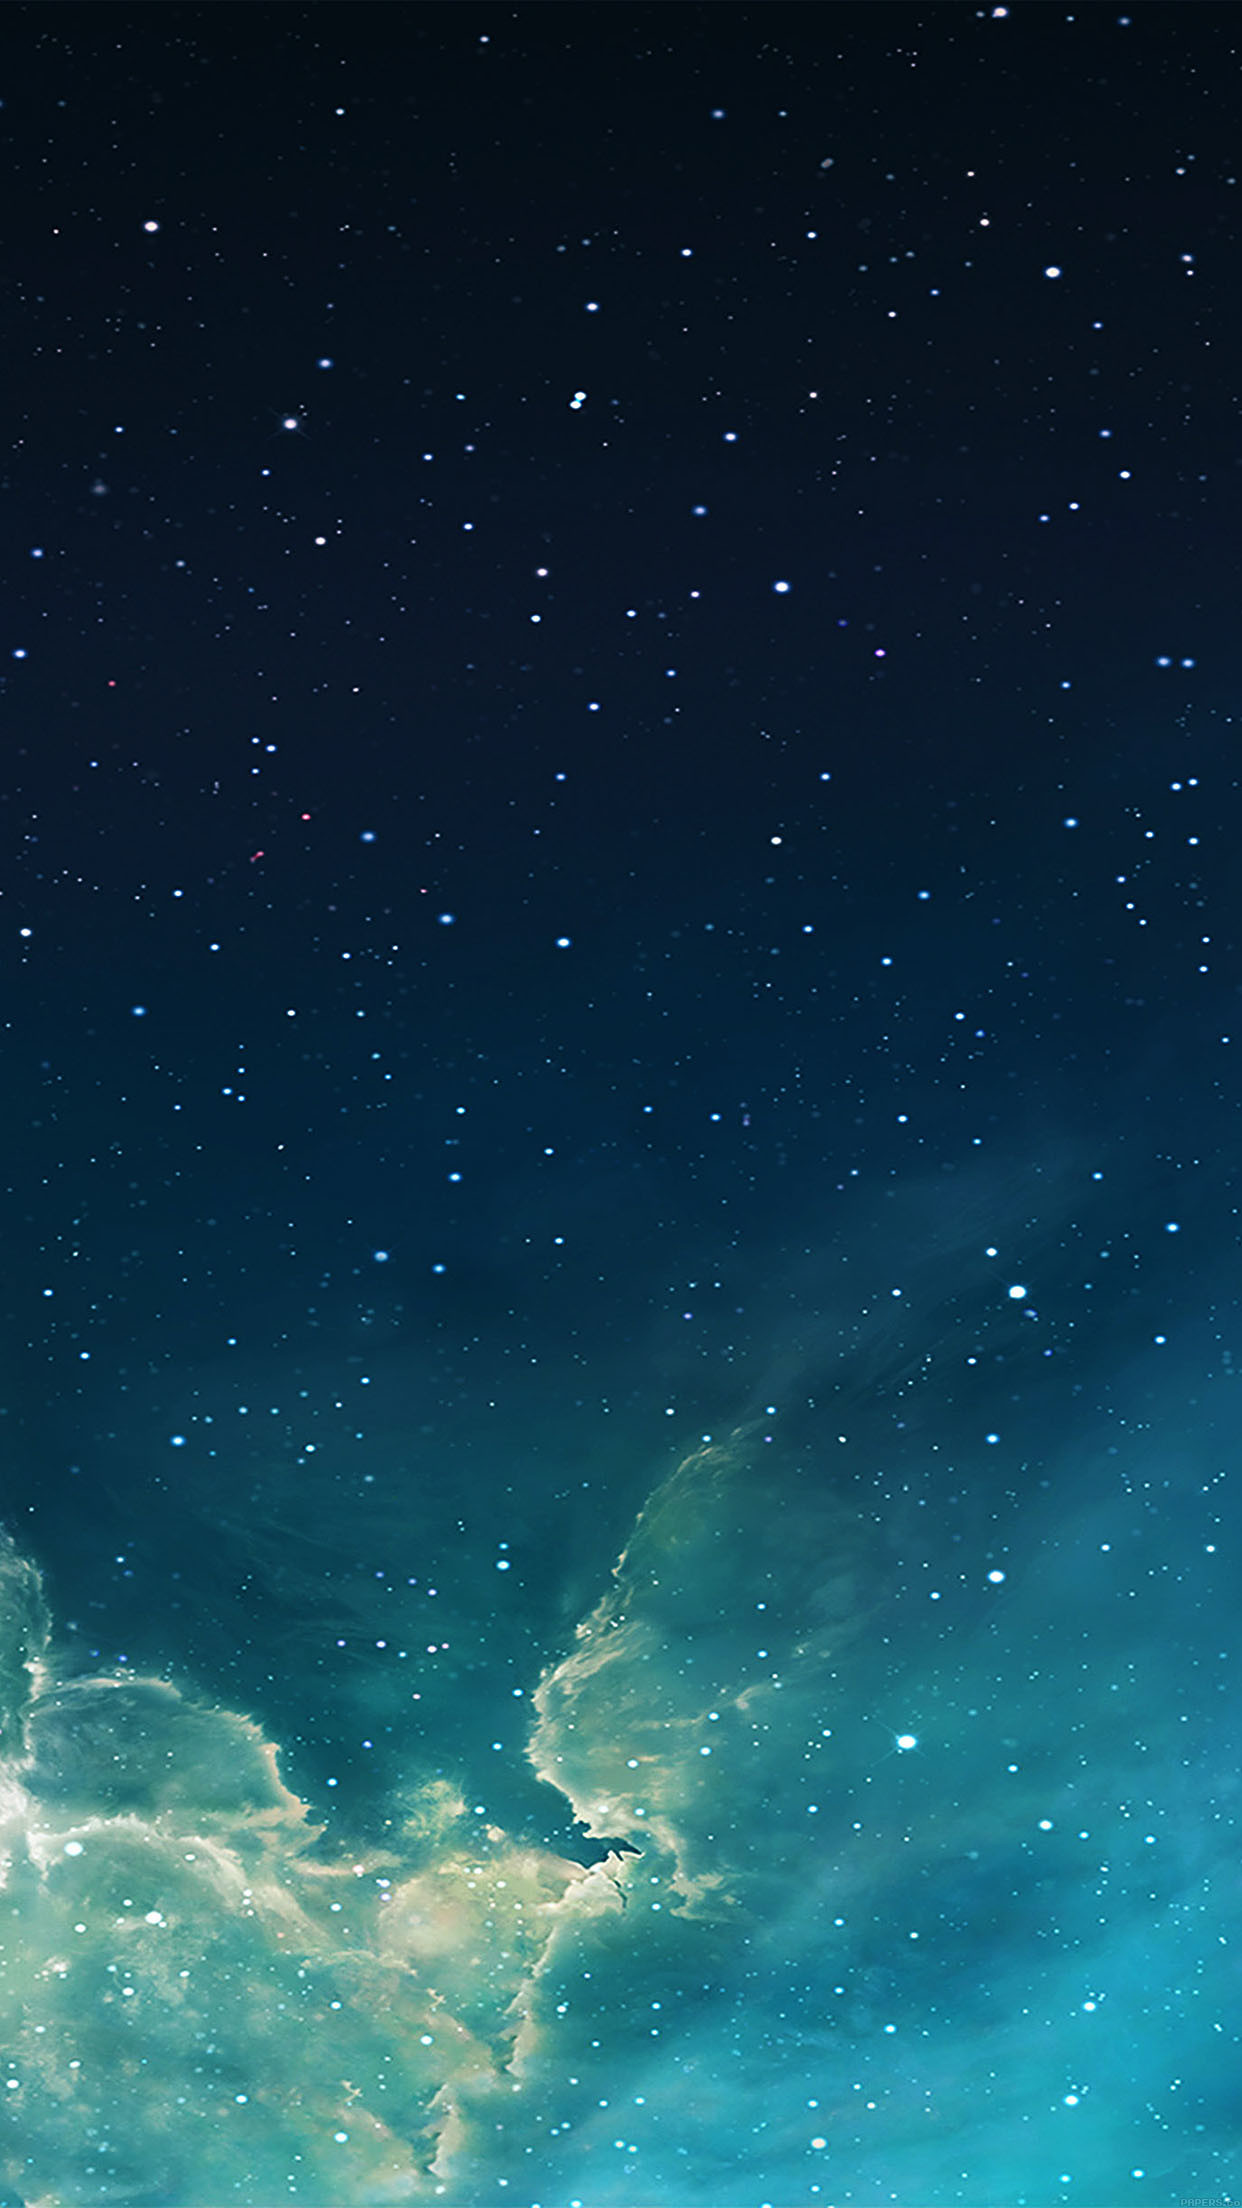 Res: 1242x2208, Wallpaper For Iphone, Iphone Wallpapers, 1, Beach, Ravenclaw, Clouds,  Galaxies, Stars, Iphone Backgrounds